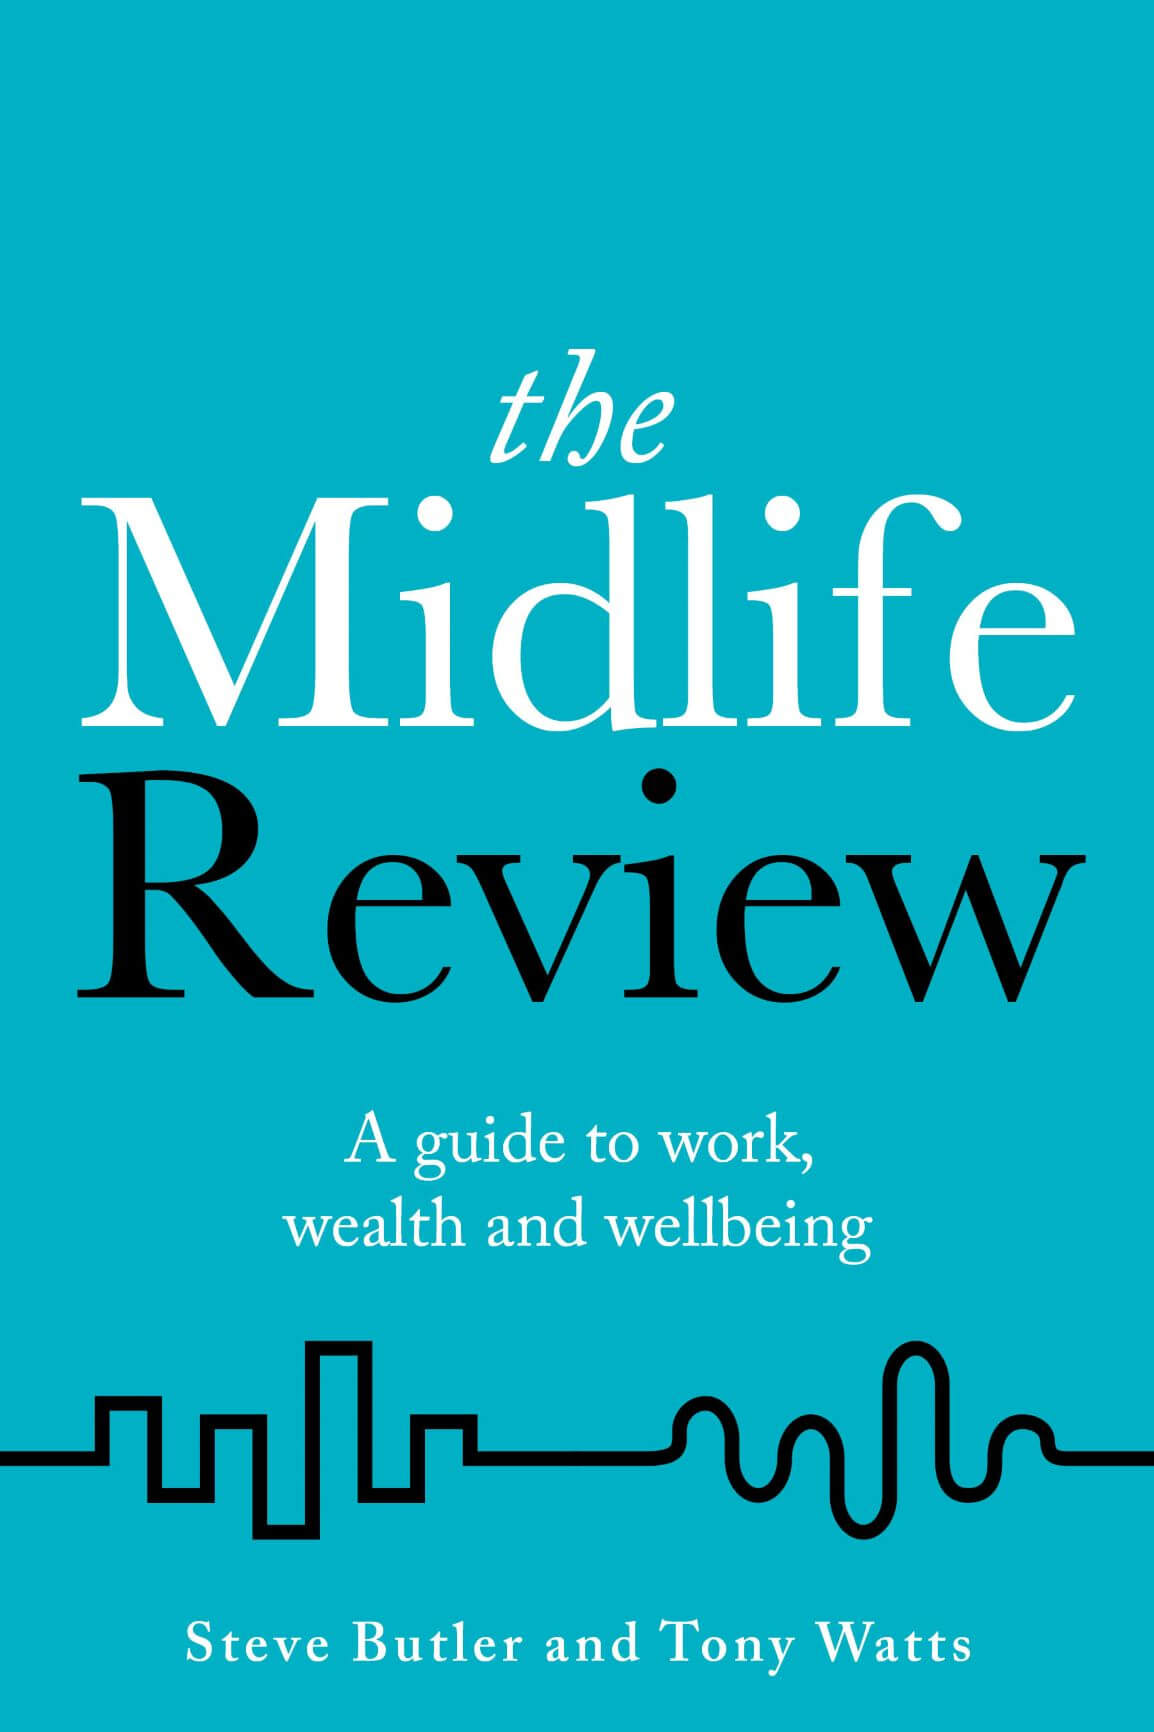 Midlife Review